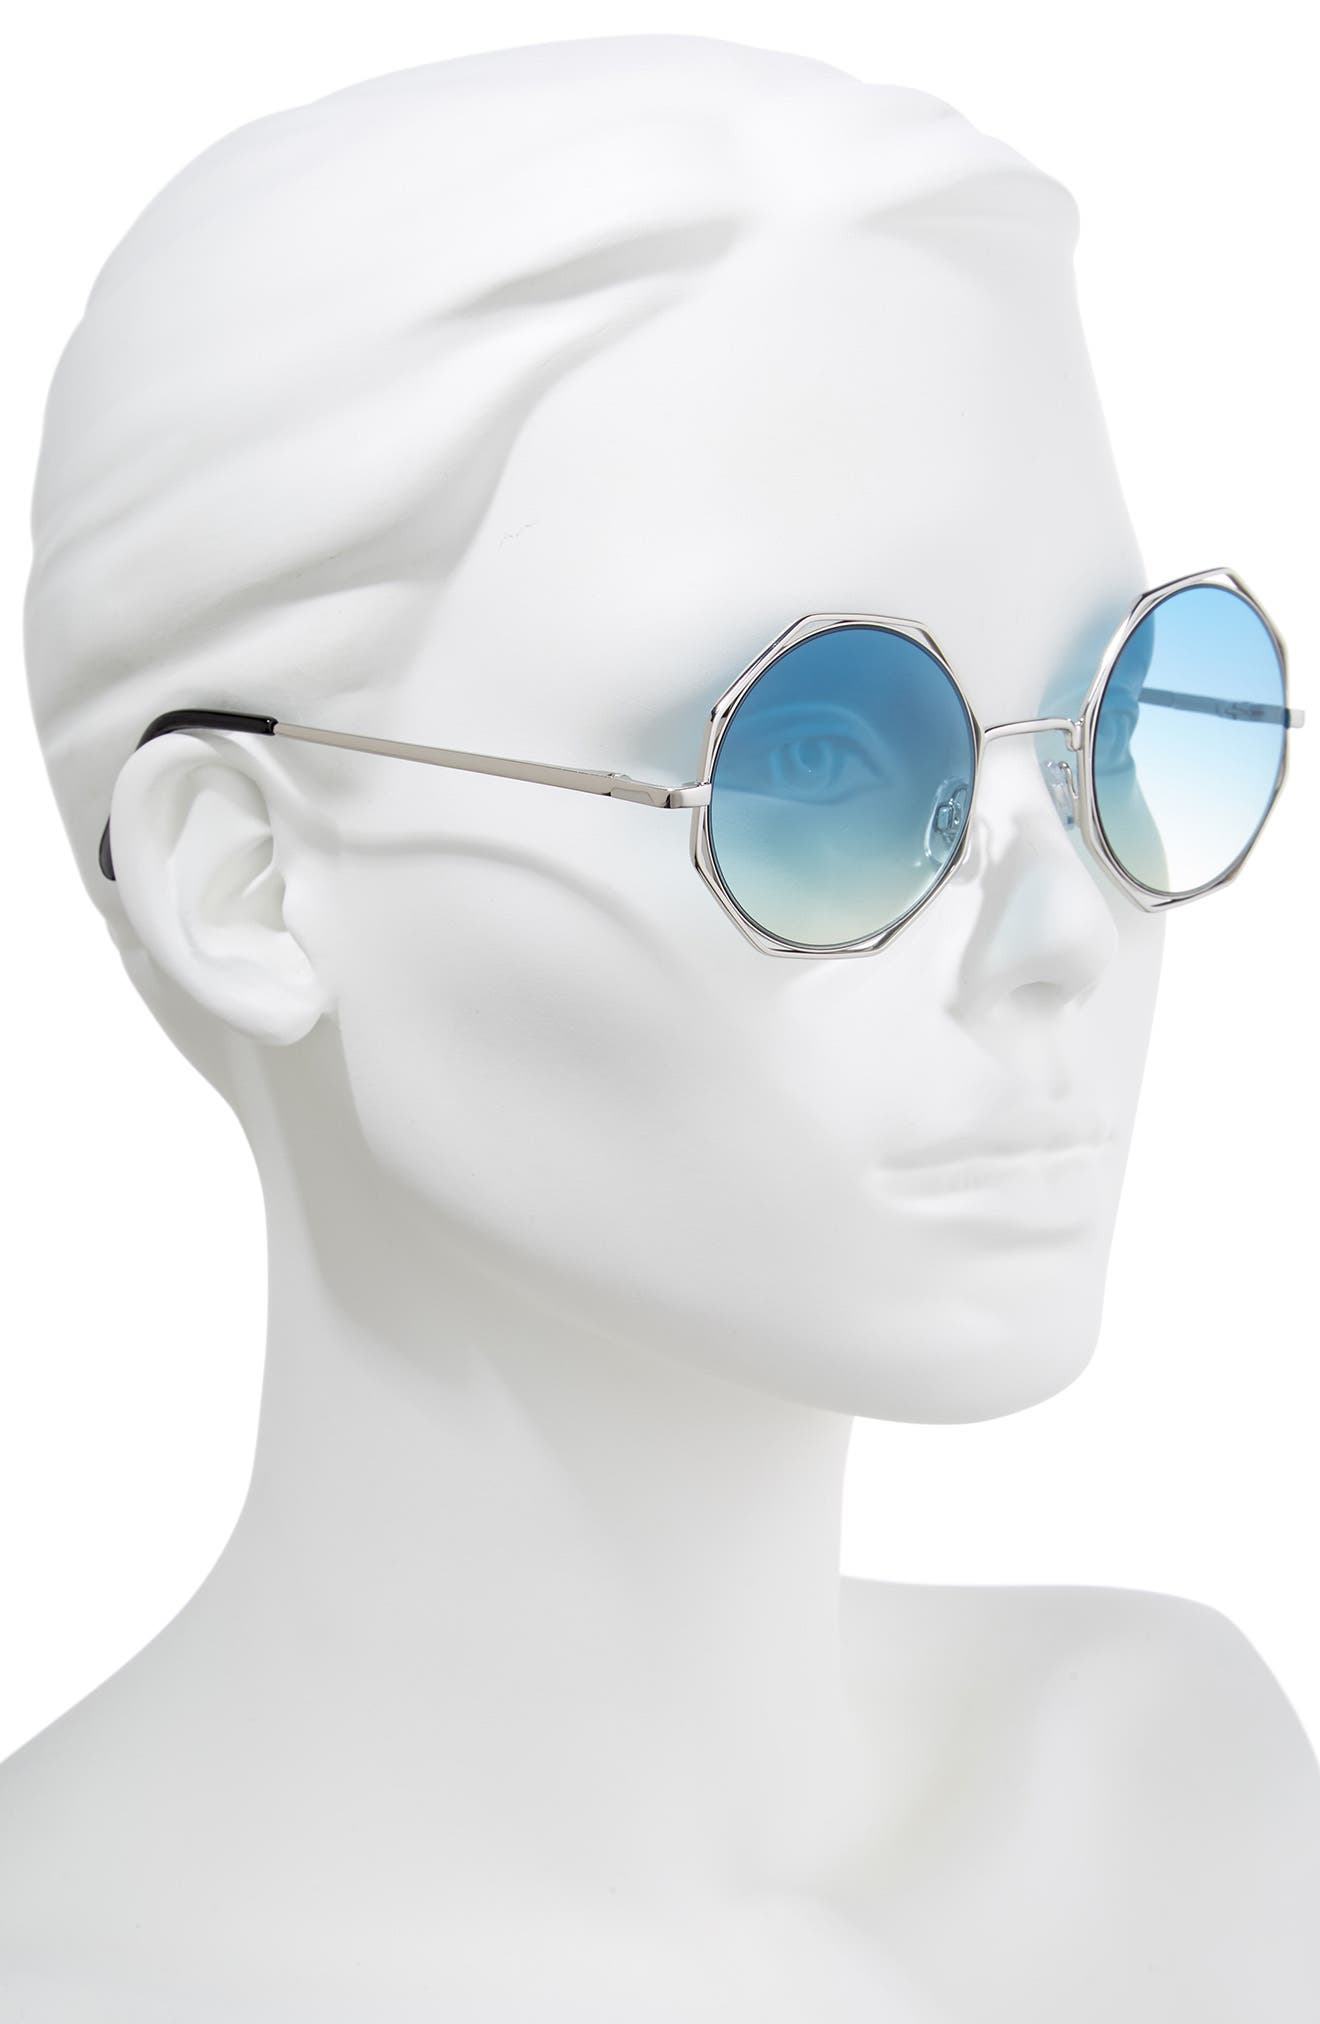 50mm Round Sunglasses,                             Alternate thumbnail 2, color,                             Silver